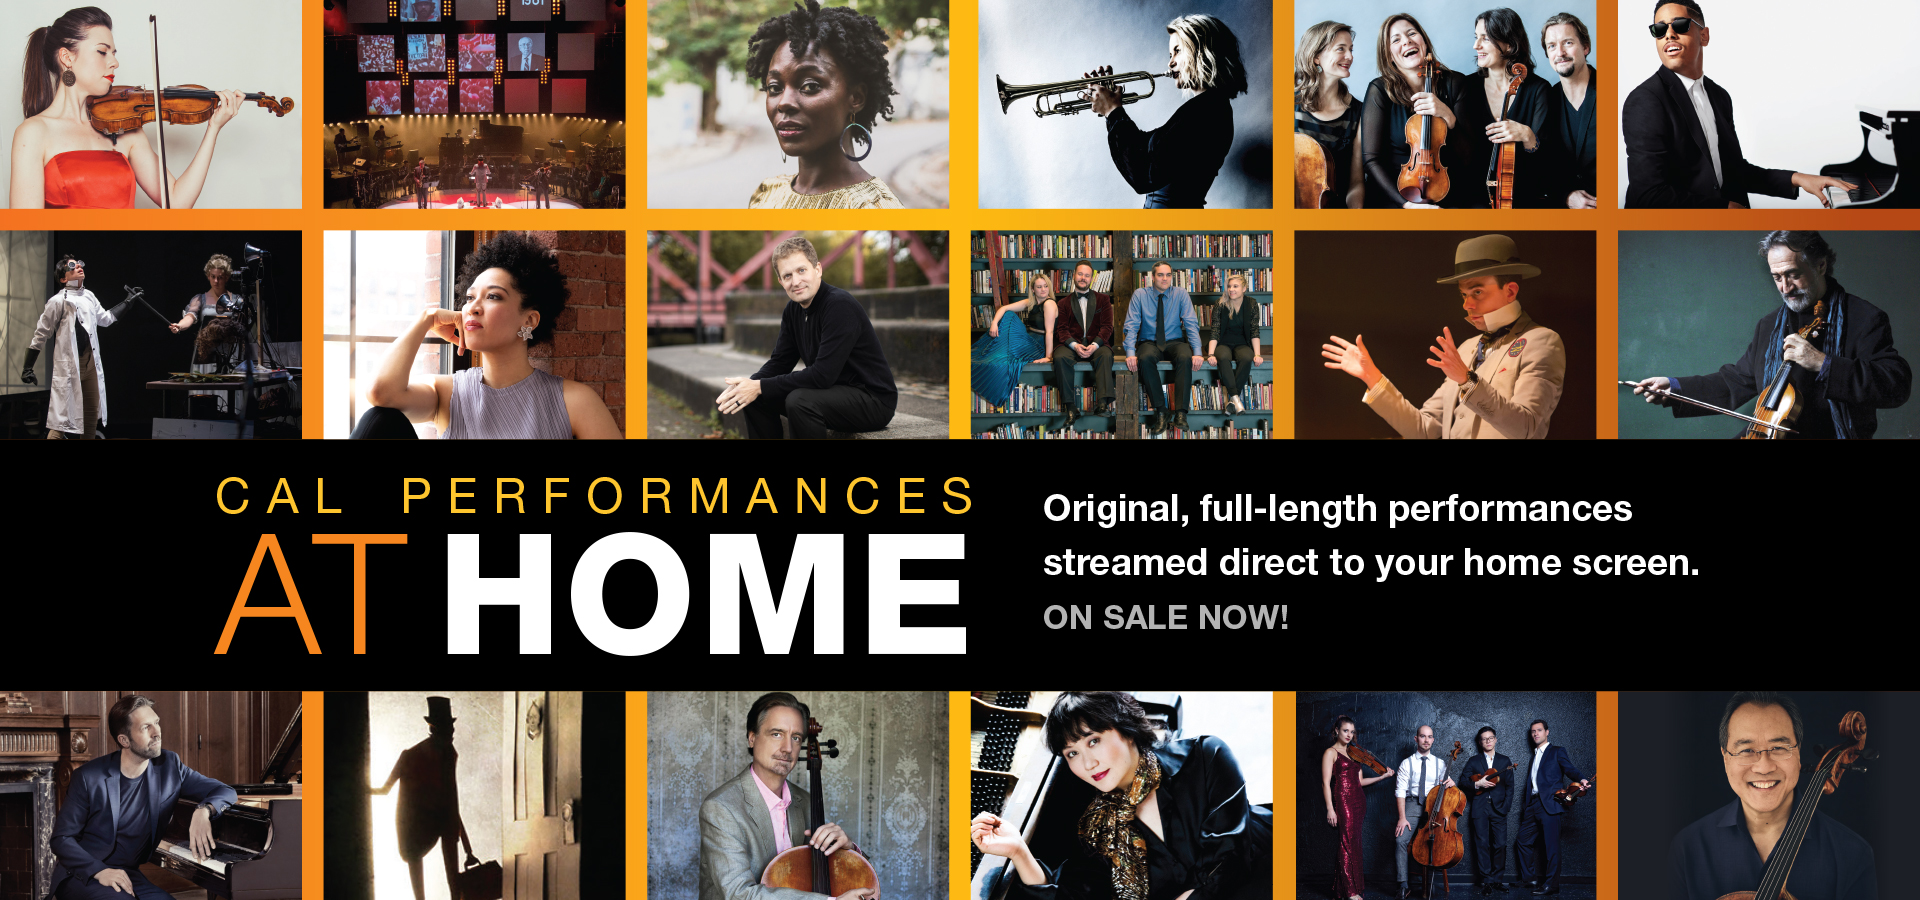 Cal Performances at Home